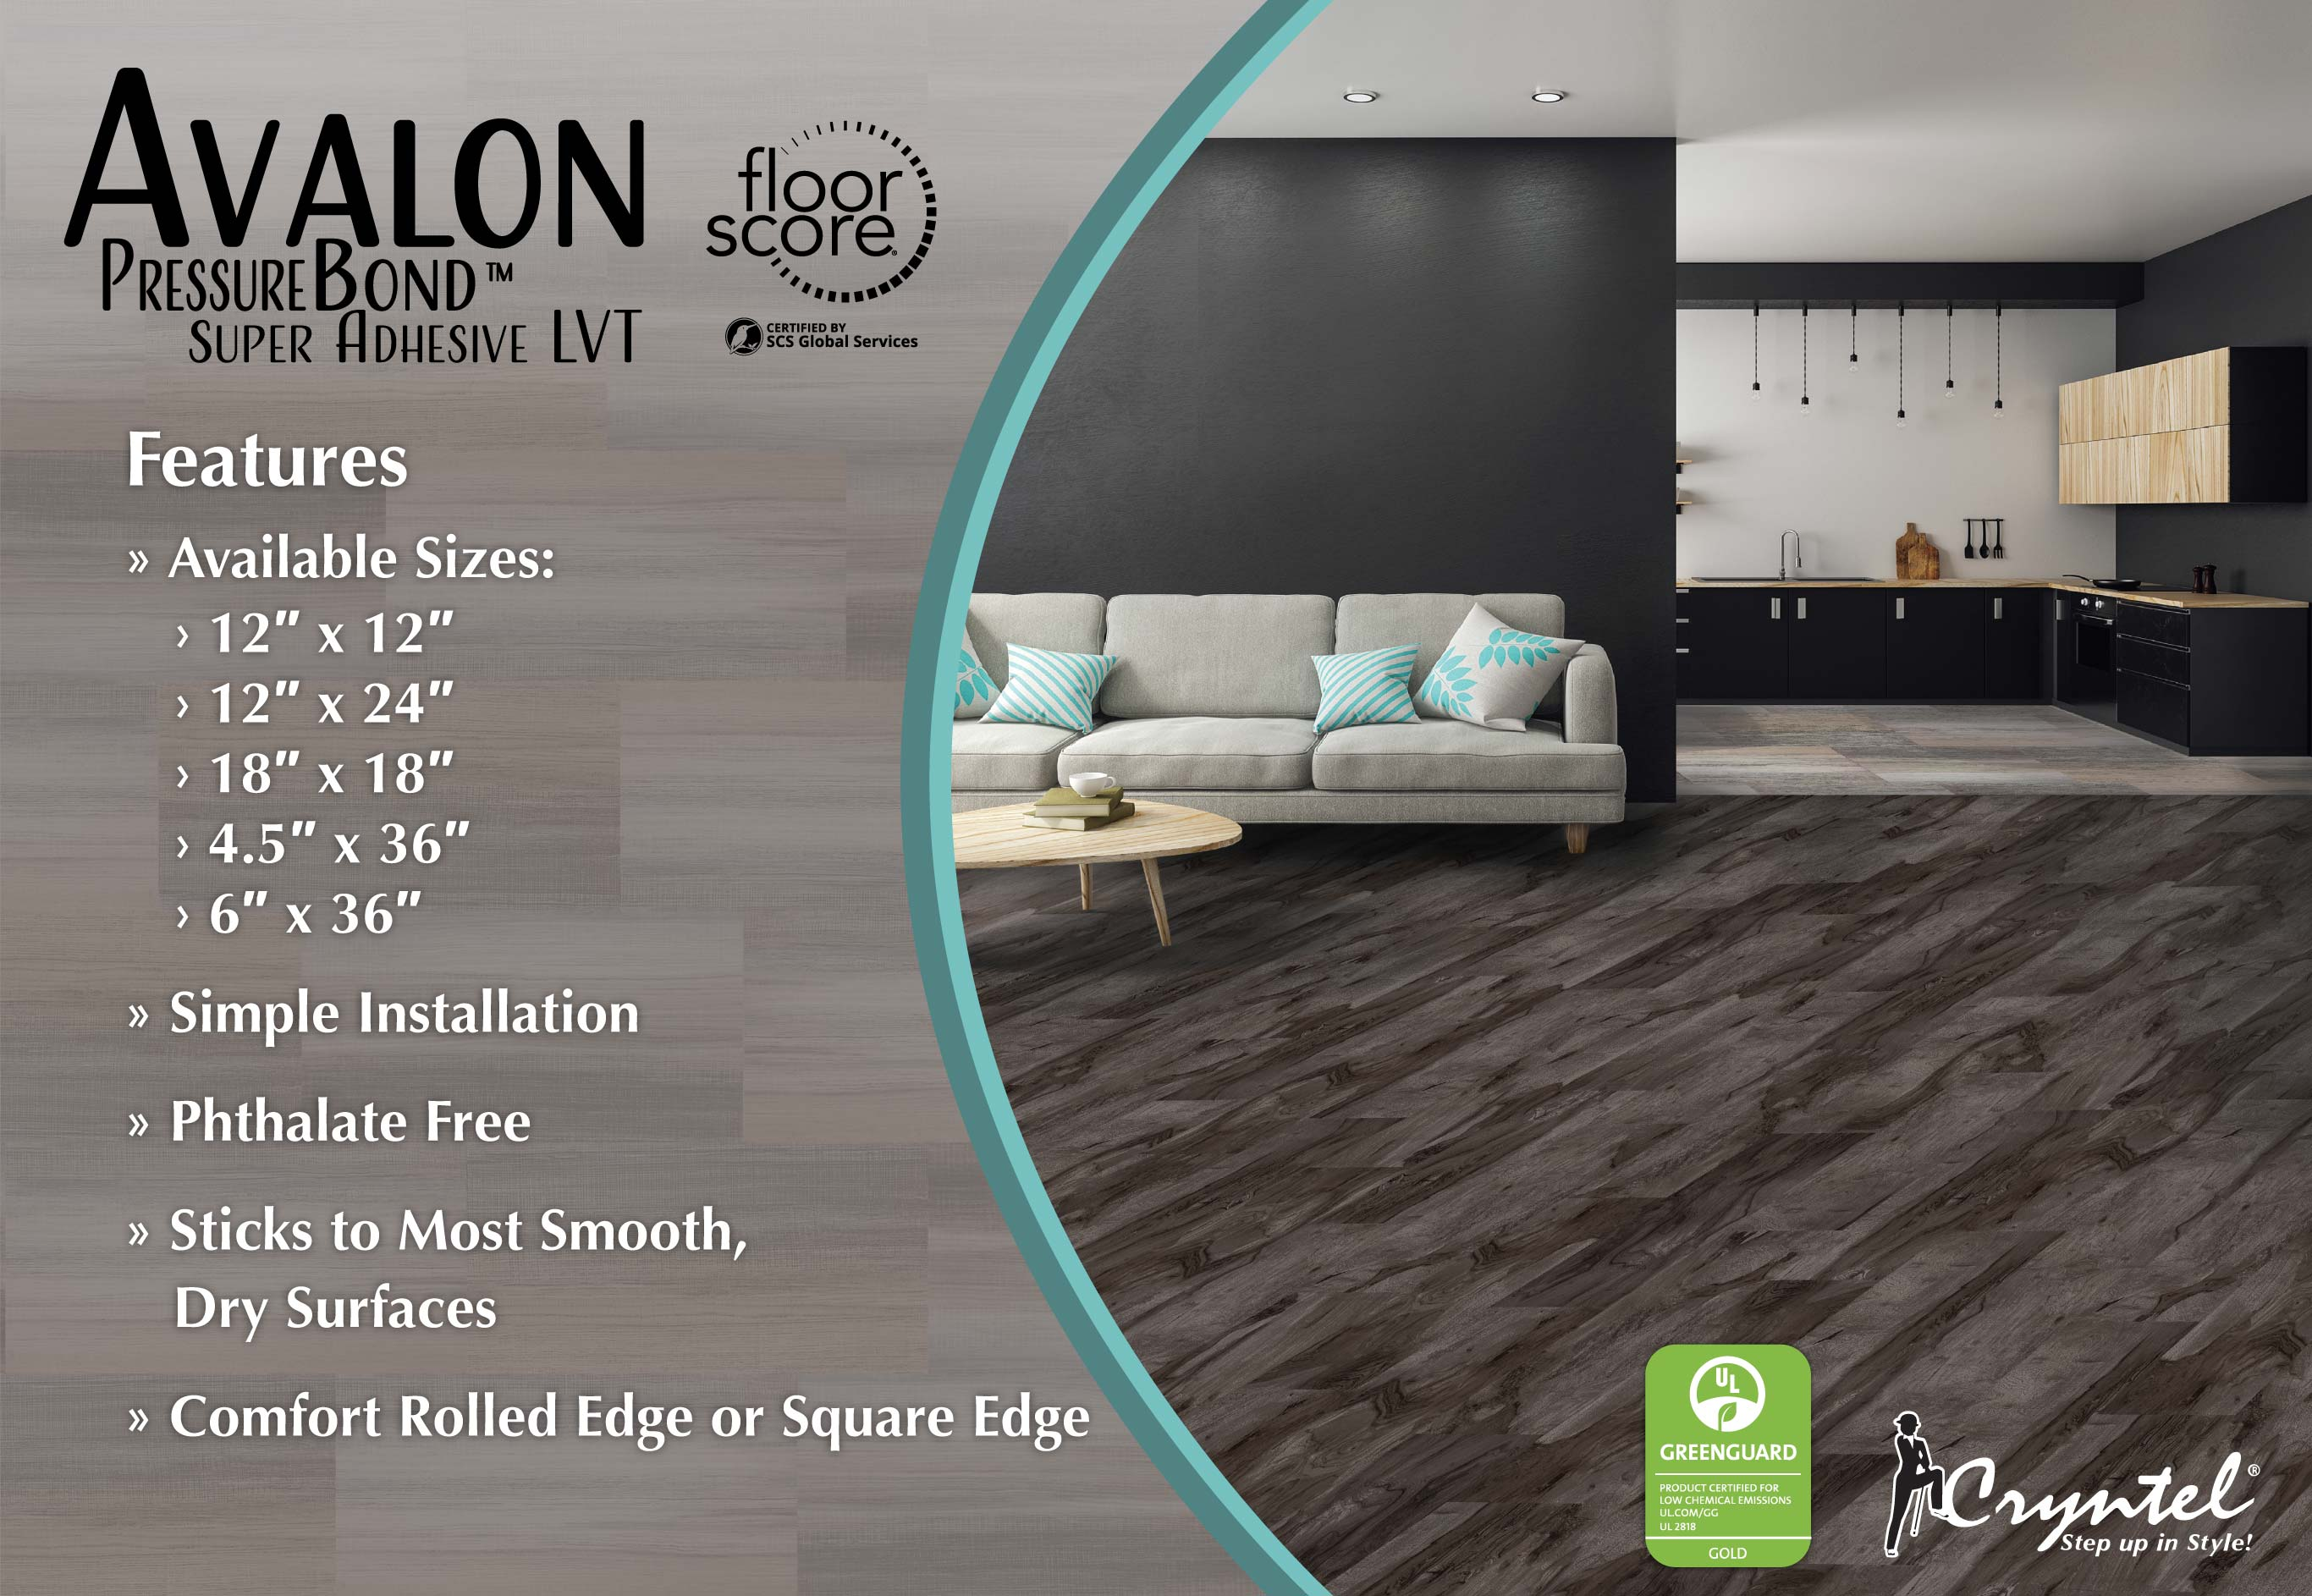 Avalon PressureBond Super Adhesive LVT